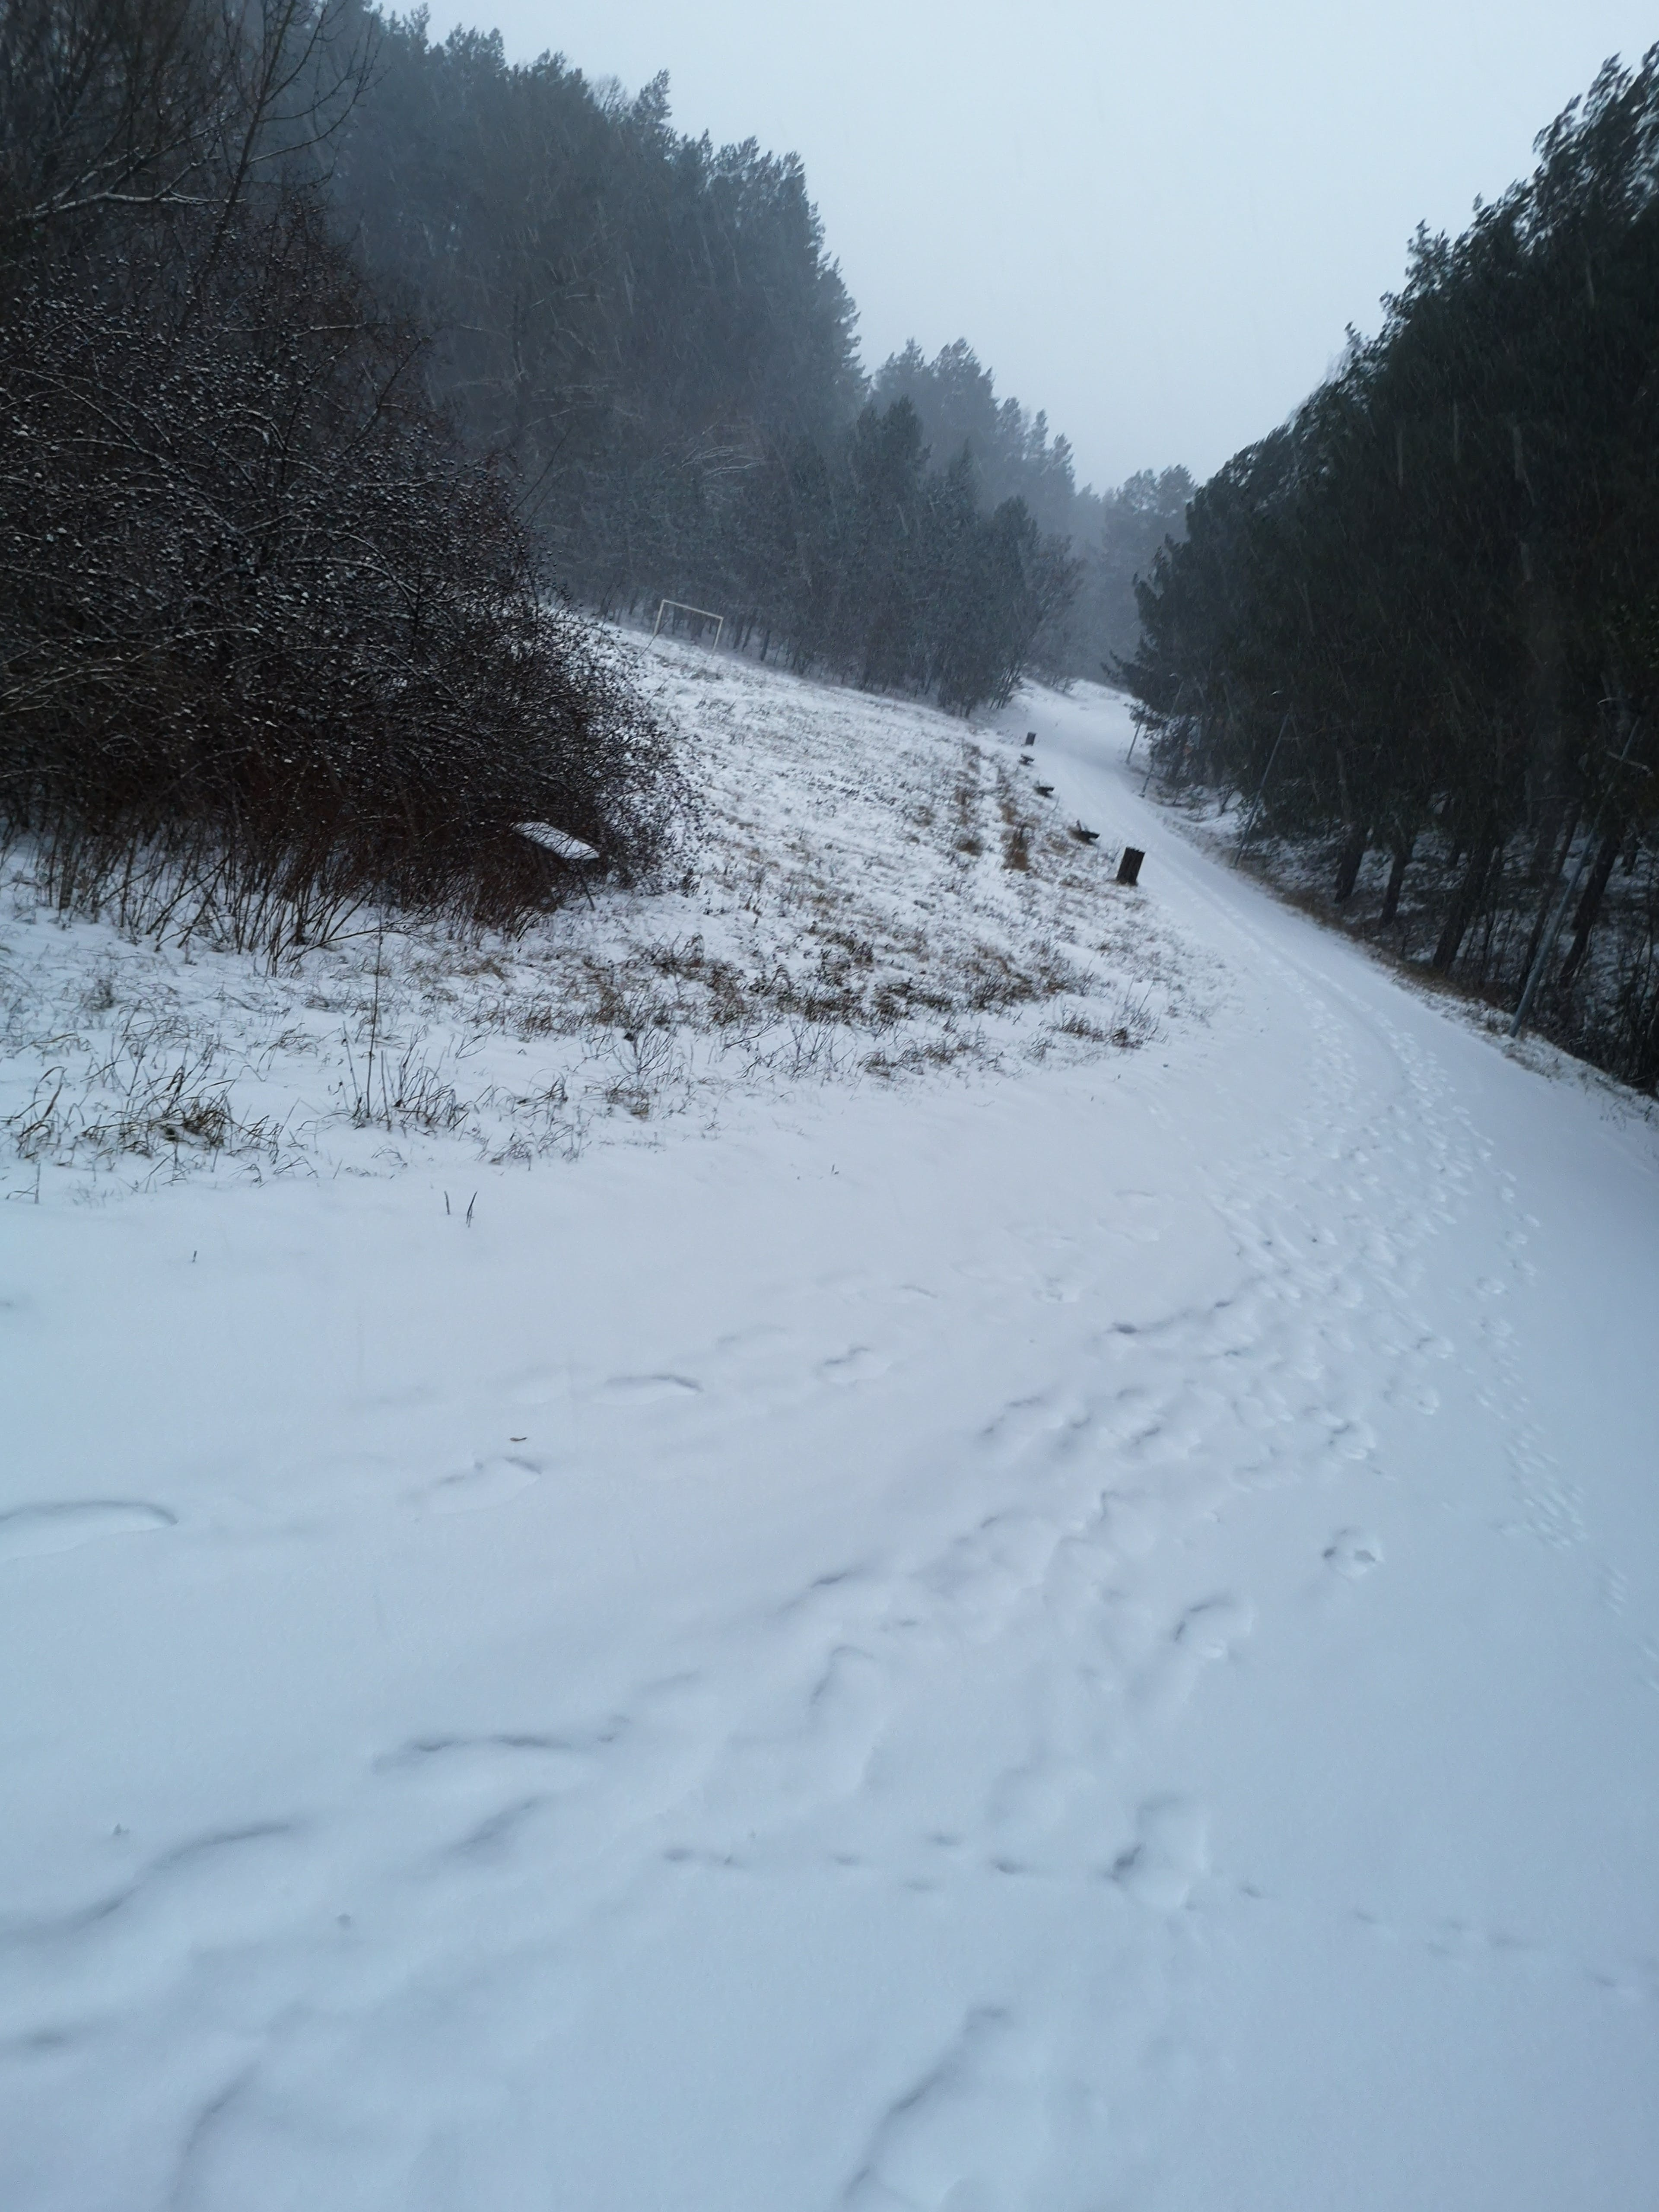 Free stock photo of foot path, forest, road, snow